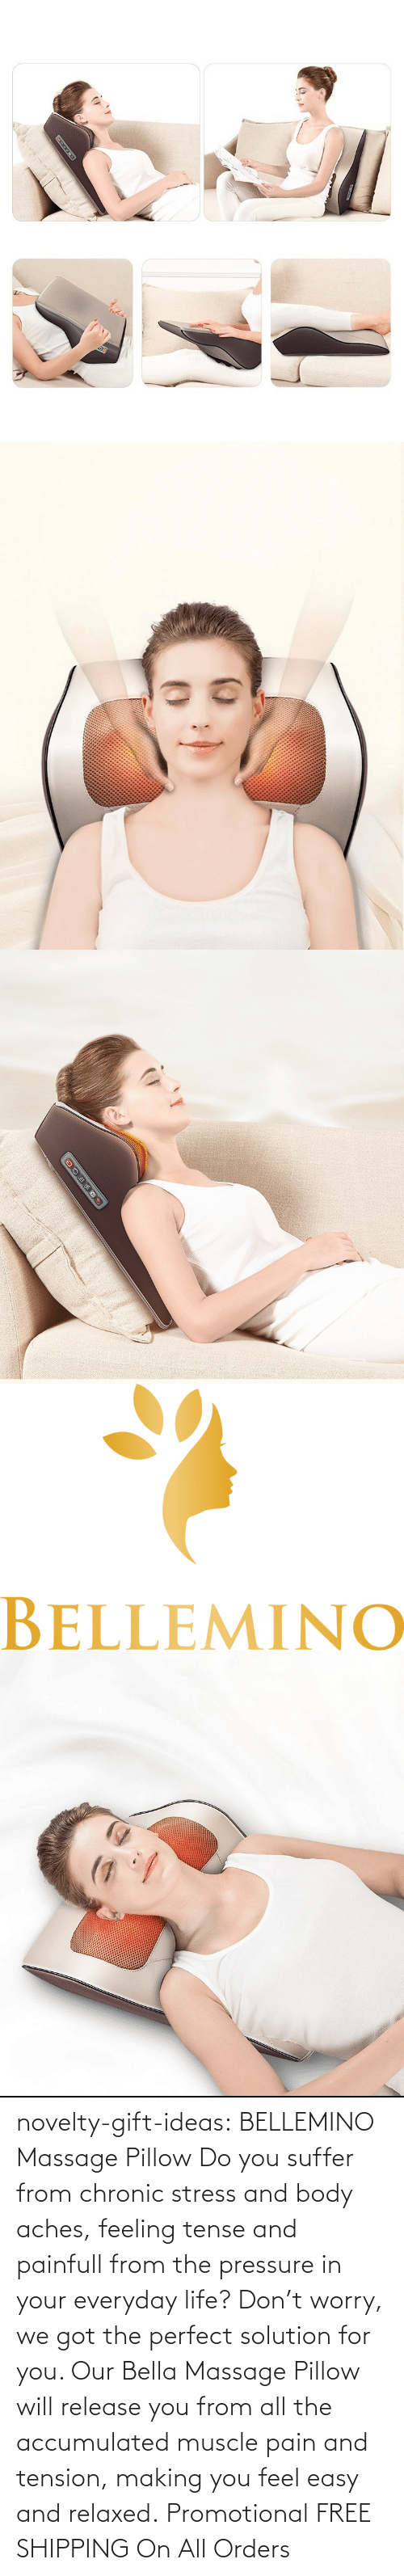 The Perfect: novelty-gift-ideas:   BELLEMINO Massage Pillow     Do you suffer from chronic stress and body aches, feeling tense and painfull from the pressure in your everyday life? Don't worry, we got the perfect solution for you. Our Bella Massage Pillow will release you from all the accumulated muscle pain and tension, making you feel easy and relaxed.     Promotional FREE SHIPPING On All Orders